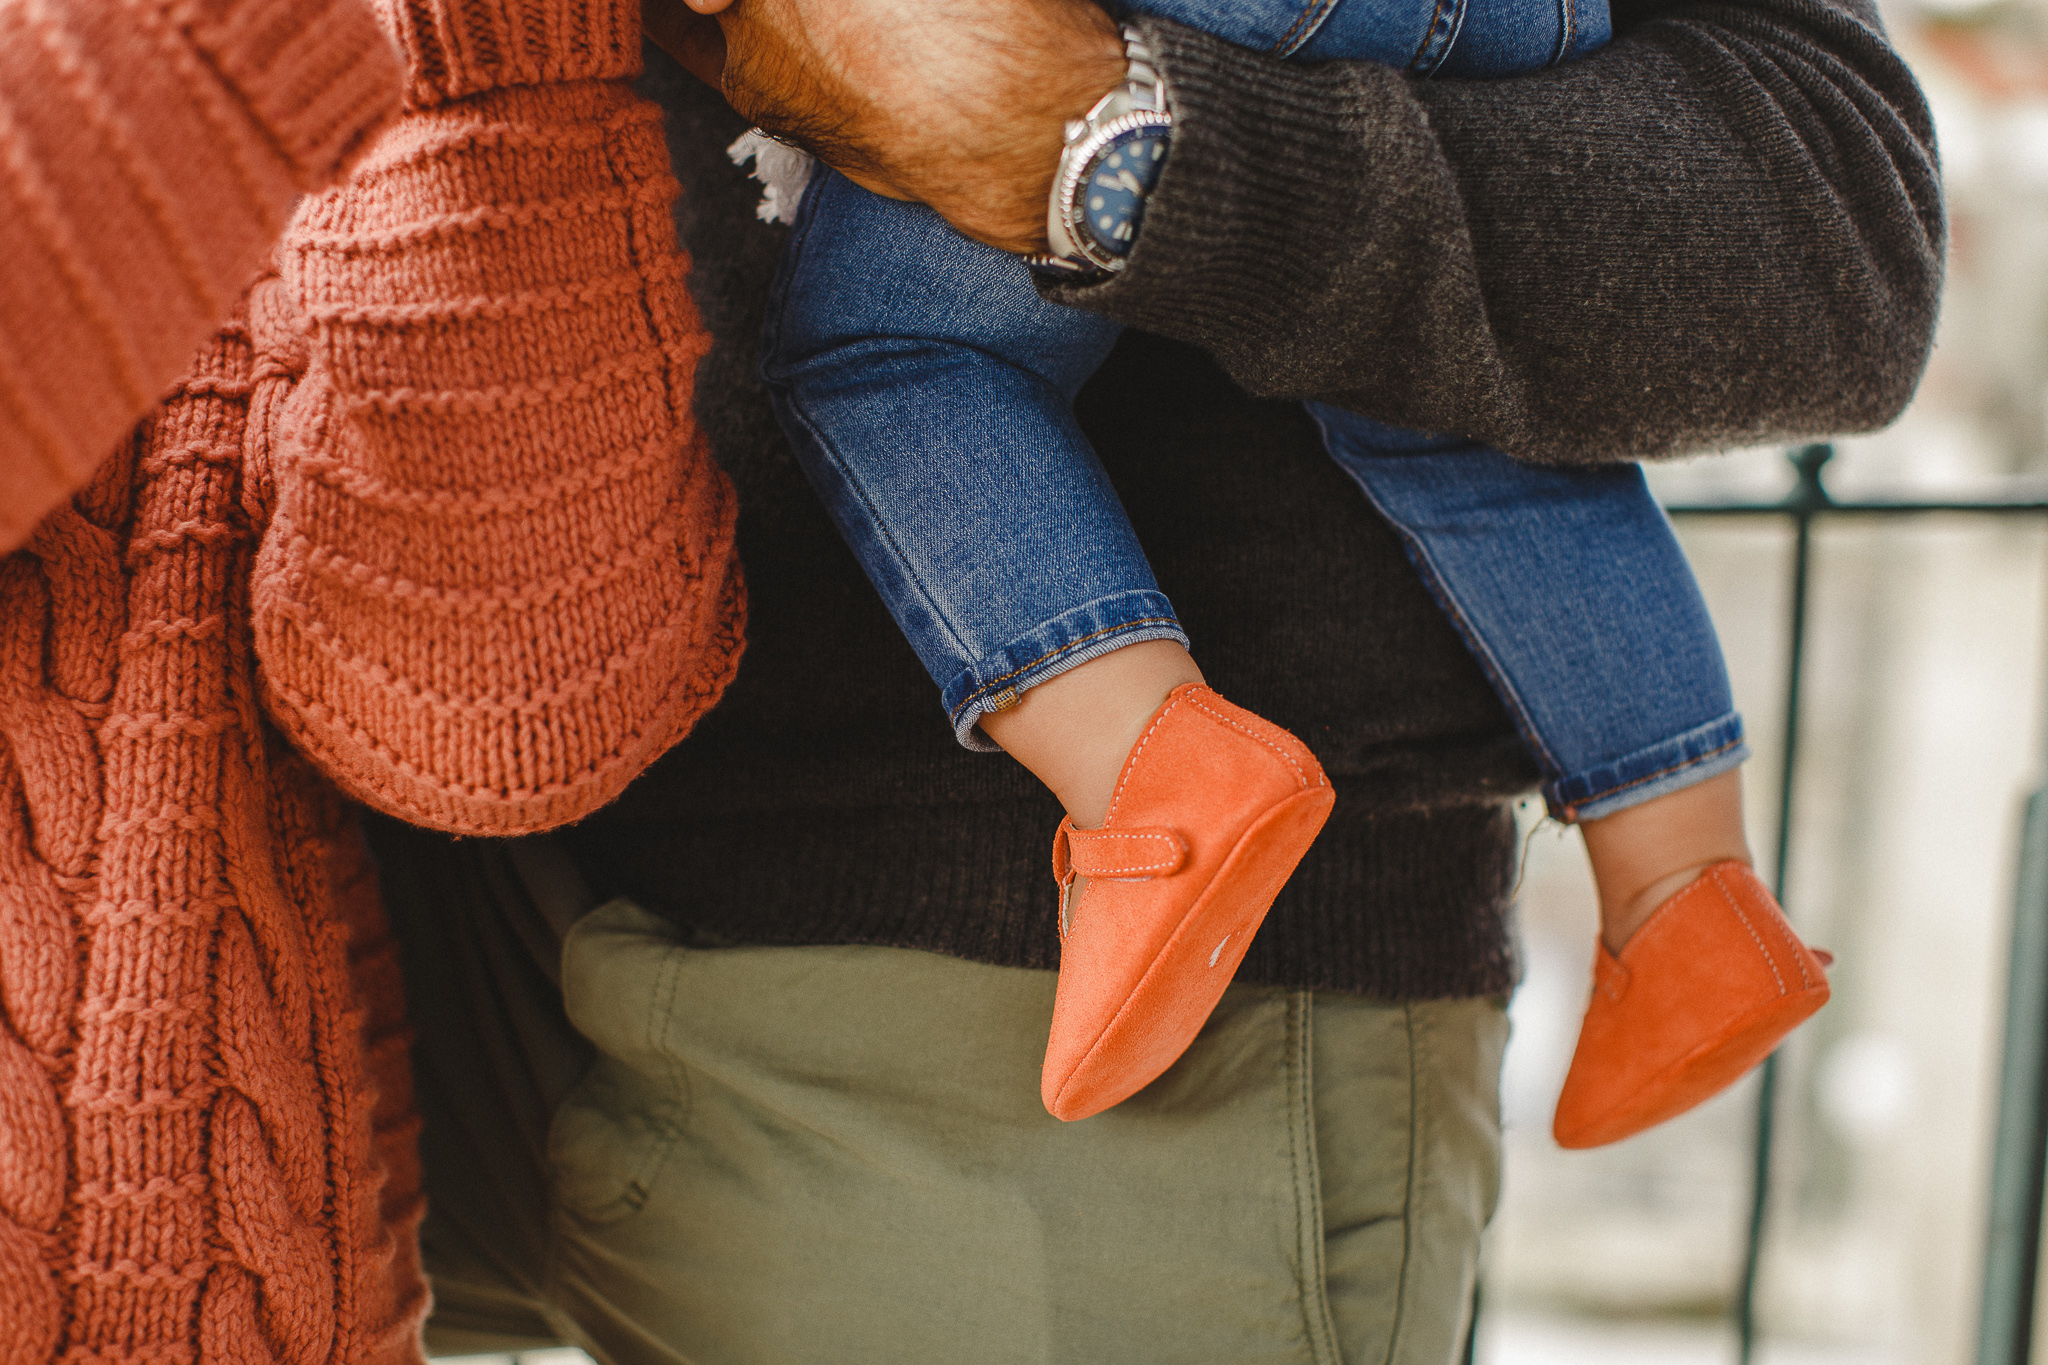 Baby being held by her dad, wearing coral's soft sole shoes.